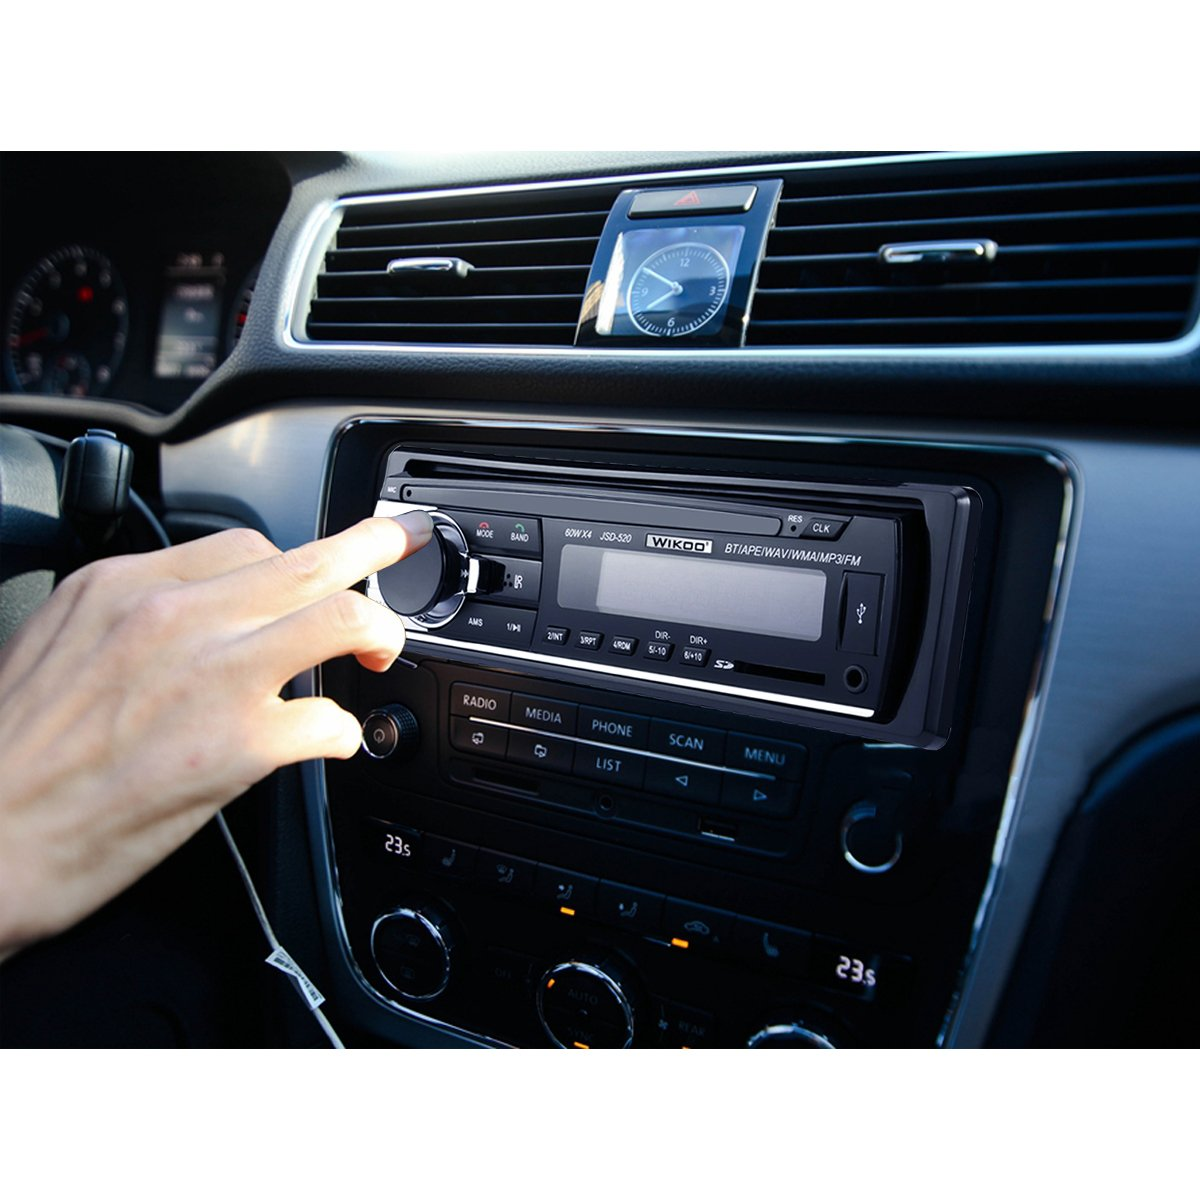 Digital Car Stereo - Wikoo Single-Din Bluetooth Car Stereo In Dash with Remote Control - Receivers USB/SD/Audio - MP3 Player/FM Radio, Supports Hands Free Calling by Wikoo (Image #8)